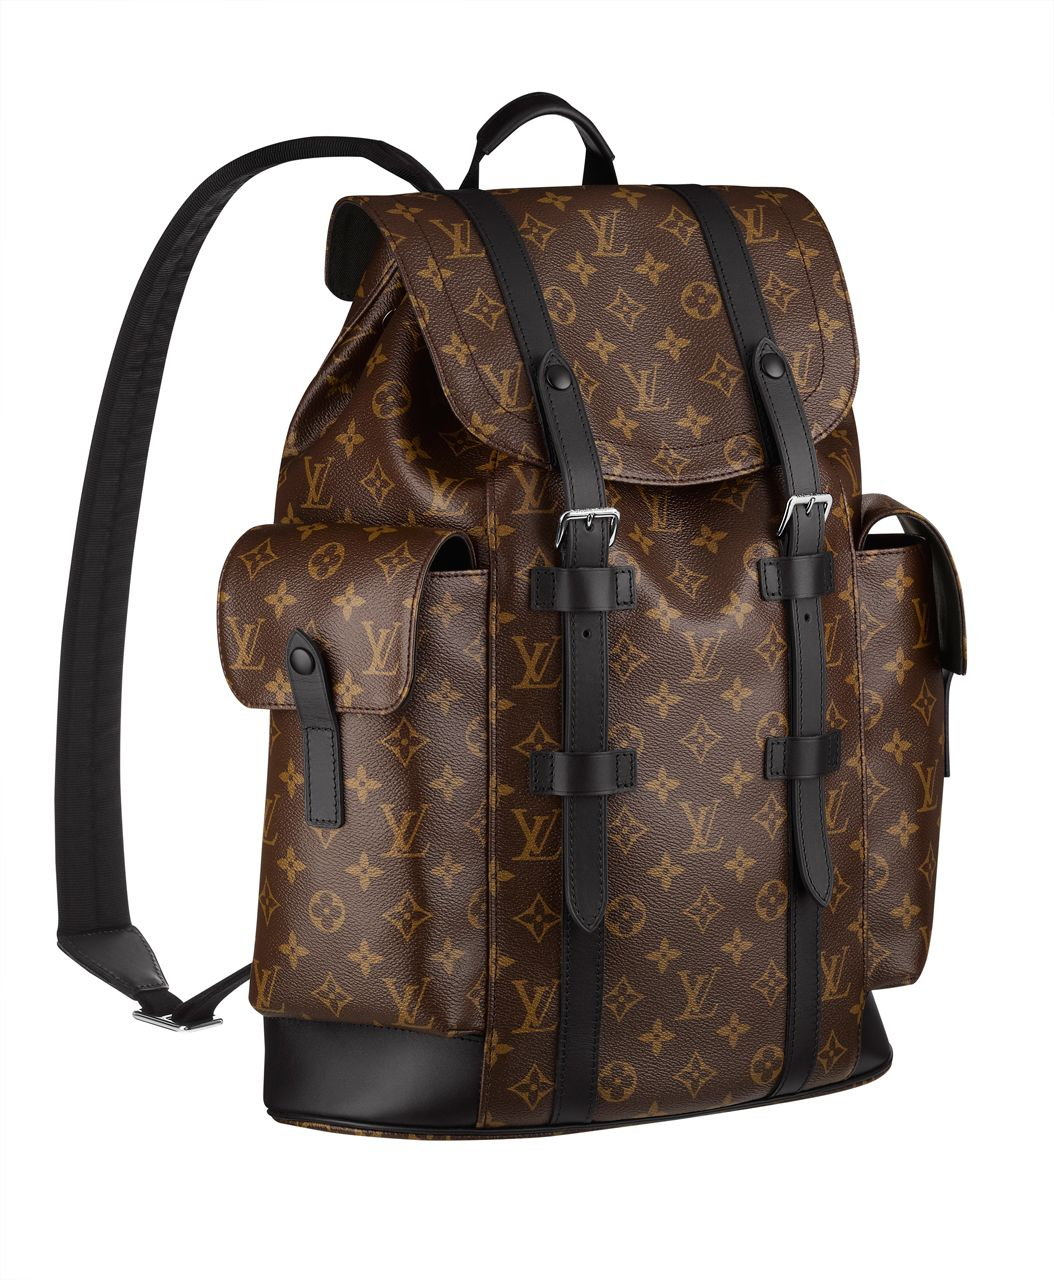 louis vuitton school bags for men. ahead of the pack:the vuitton backpack. louis vuitton backpacklouis mens school bags for men